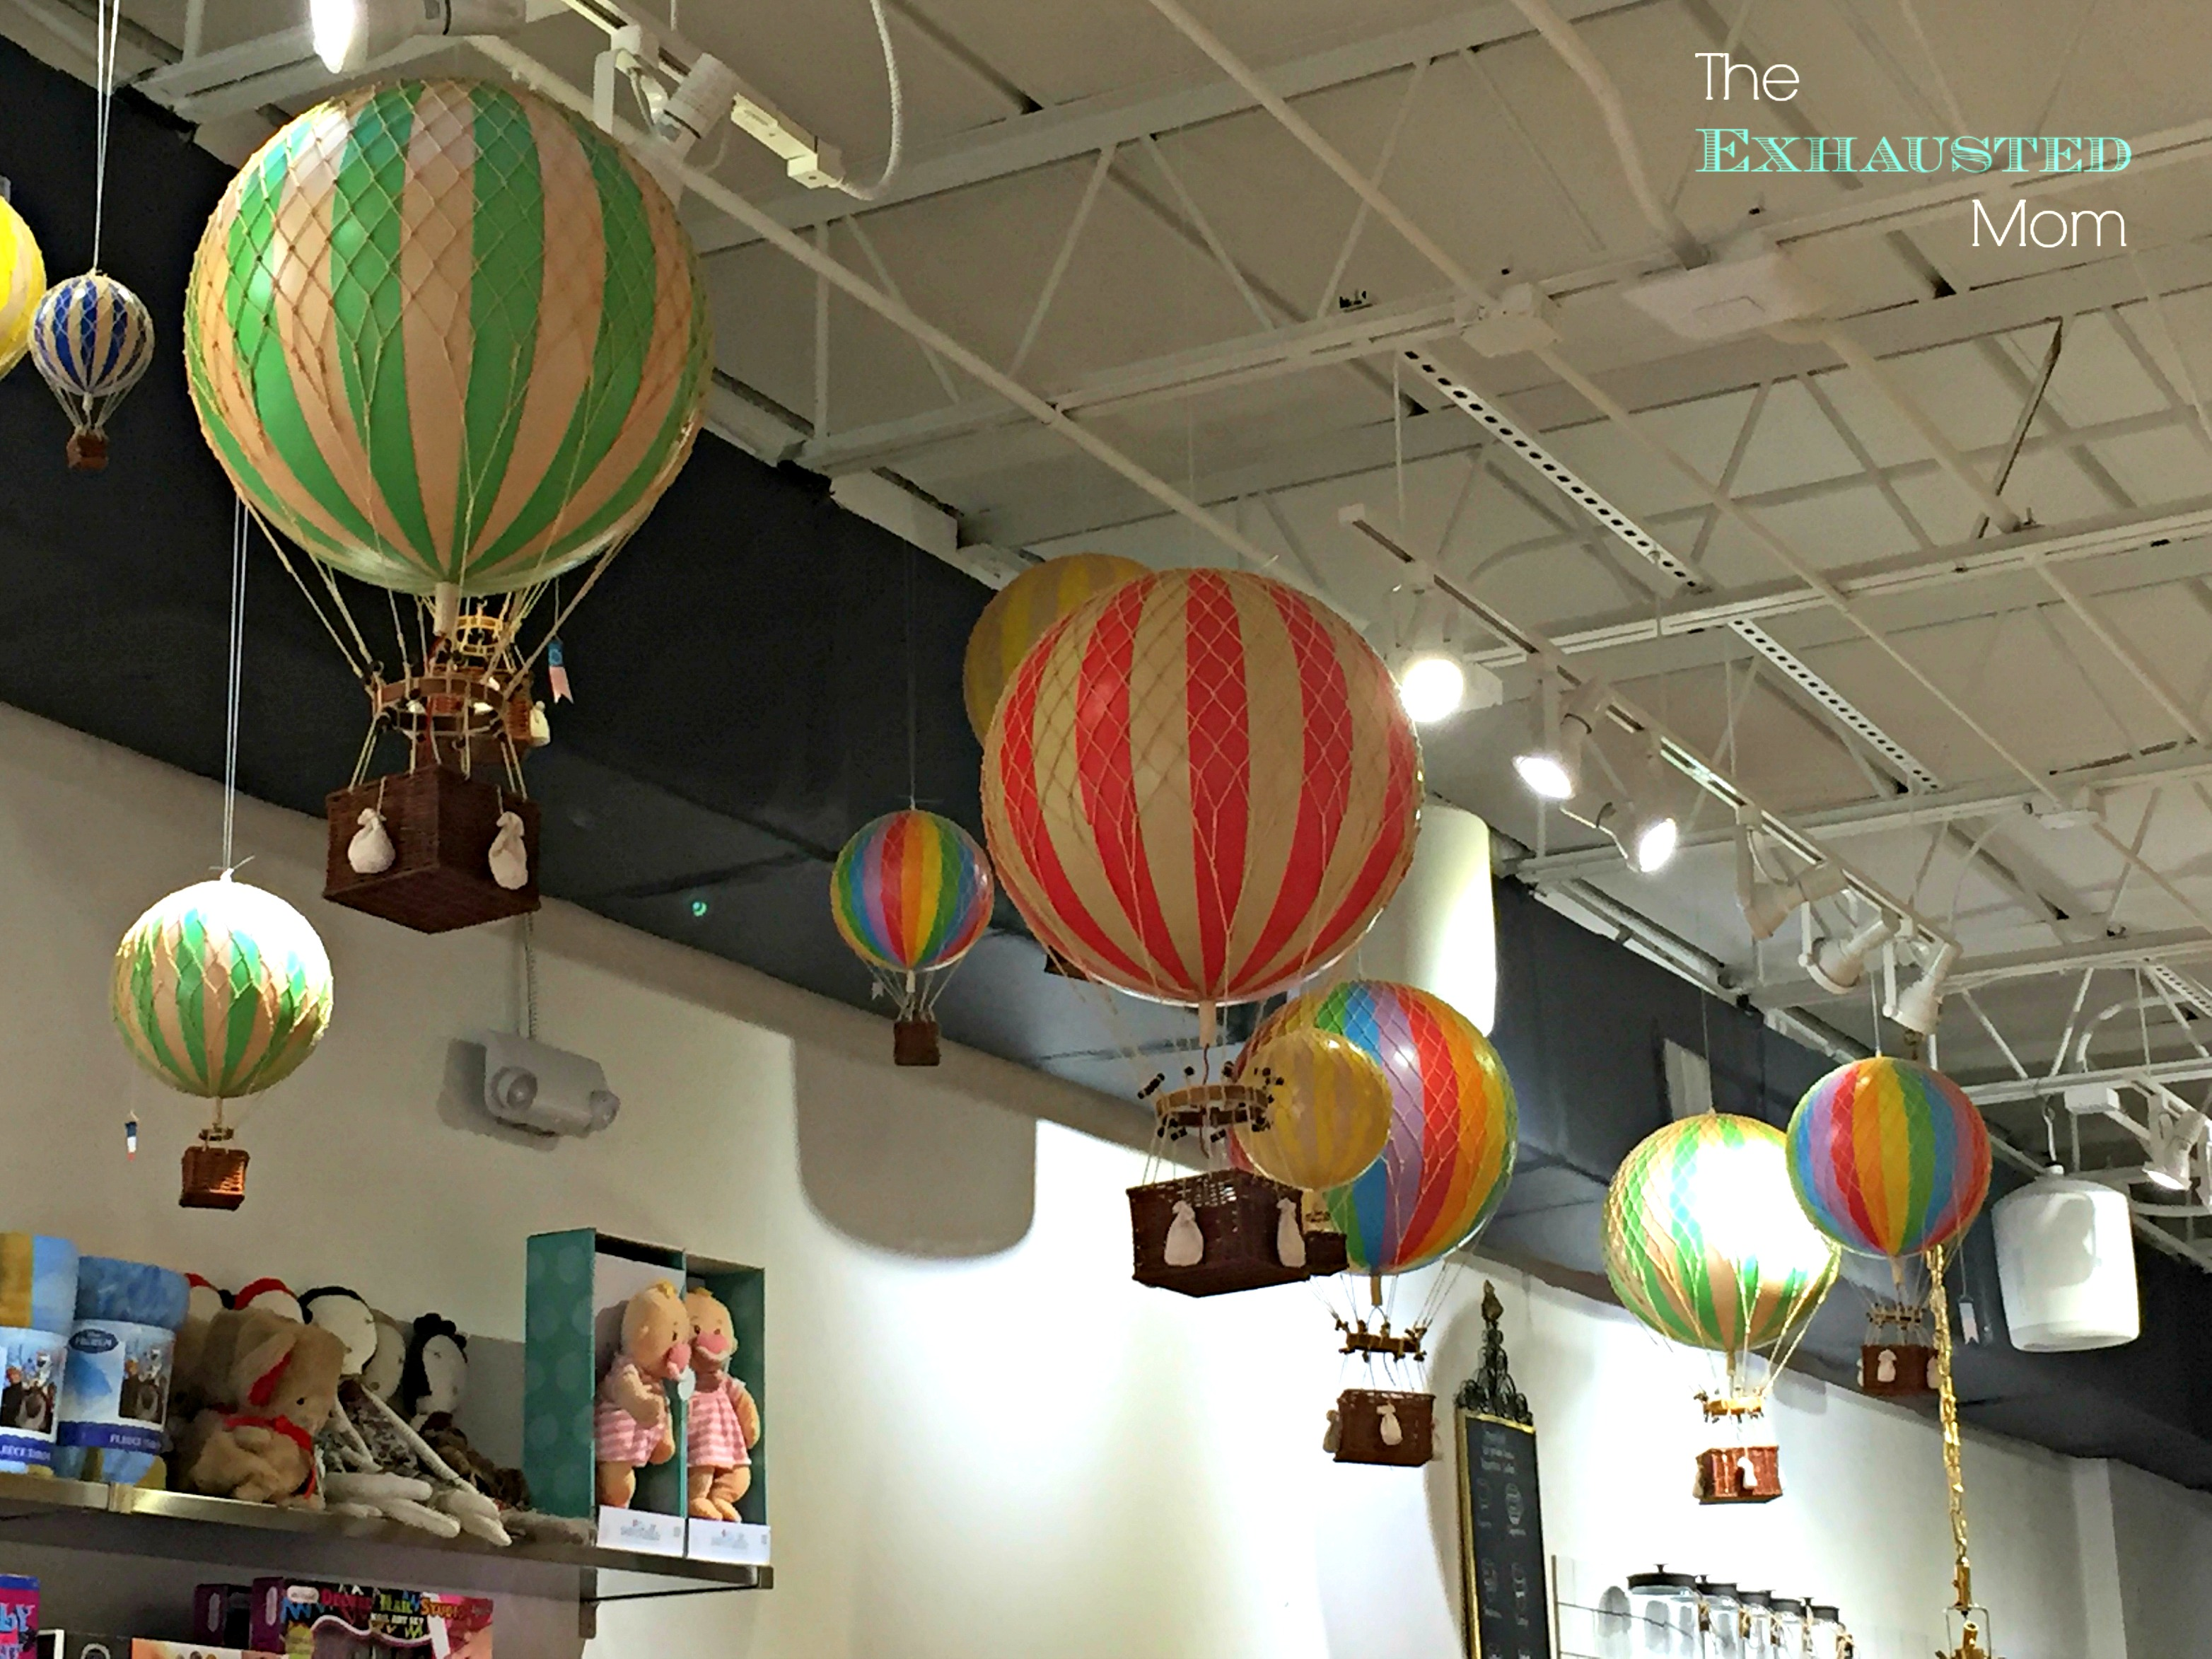 I just LOVE these hot air  balloons that hang from the ceiling!